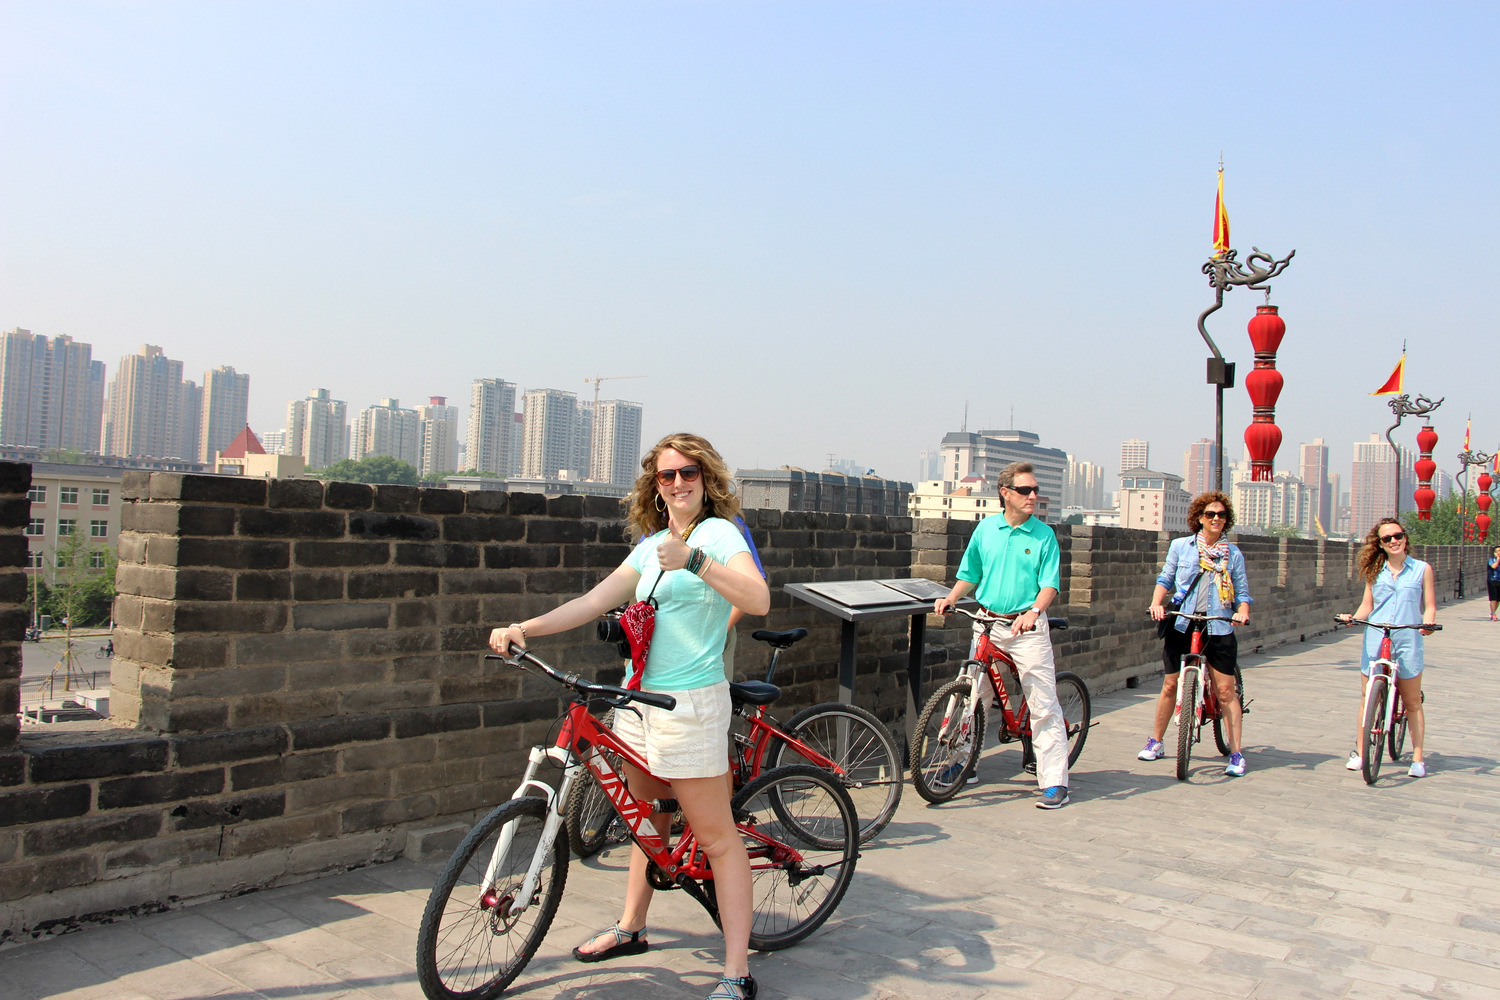 Xian Ancient Wall Bike ride